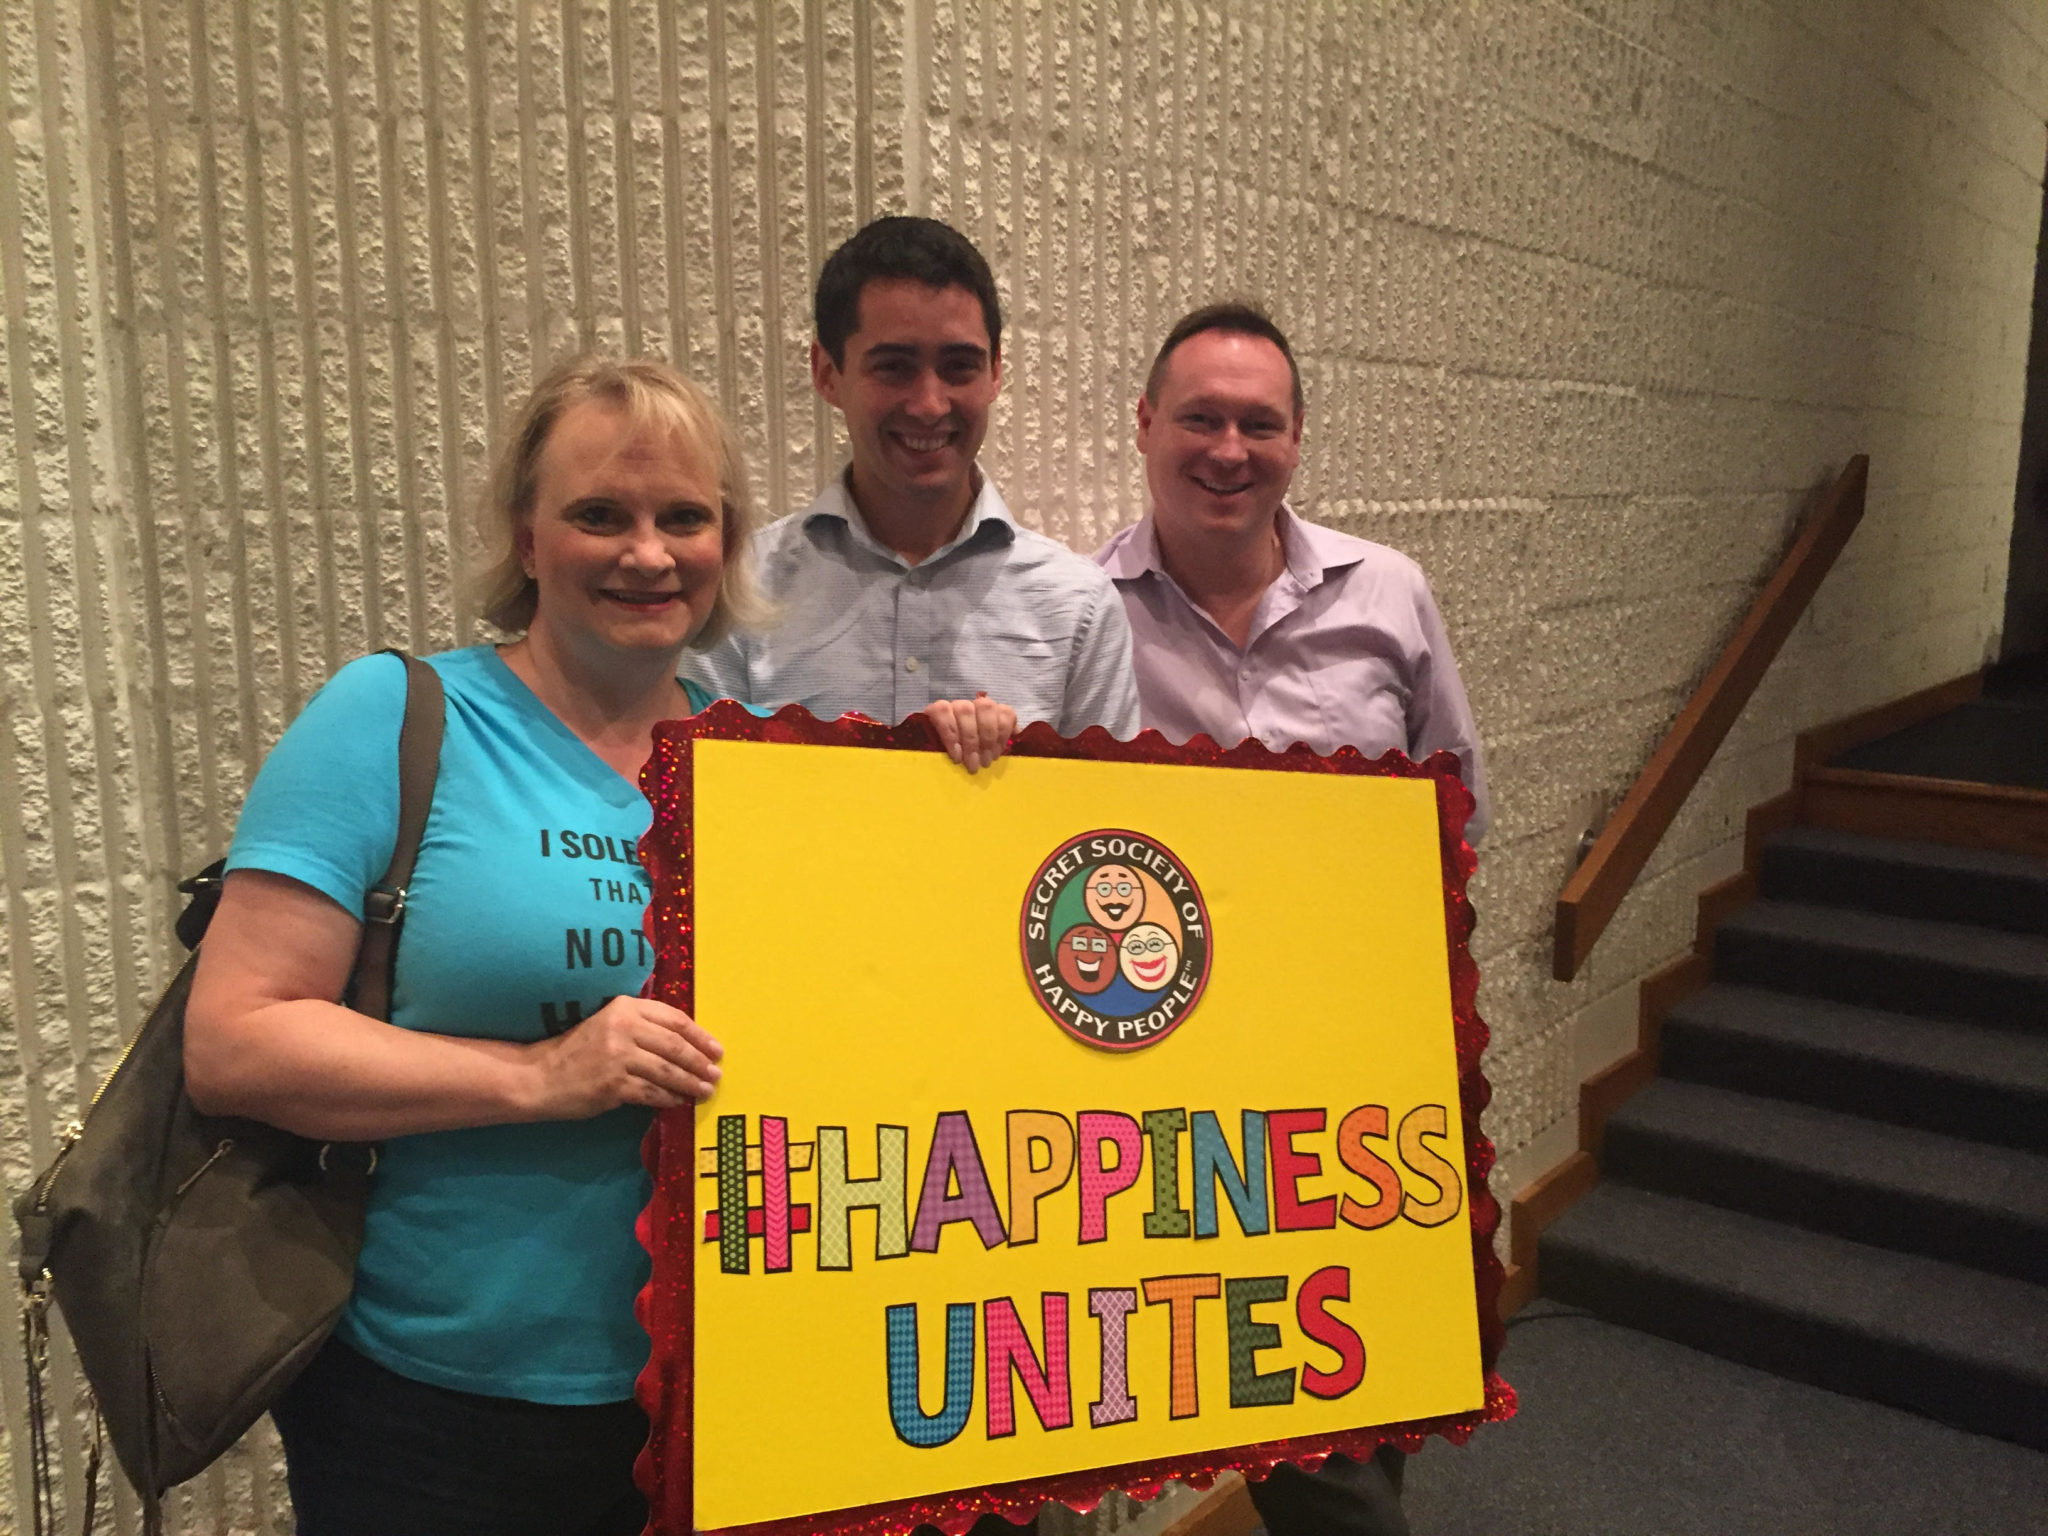 #HappinessUnites Tour, Patriotism, Congressman Burgess, SOHP.com, Pamela Gail Johnson